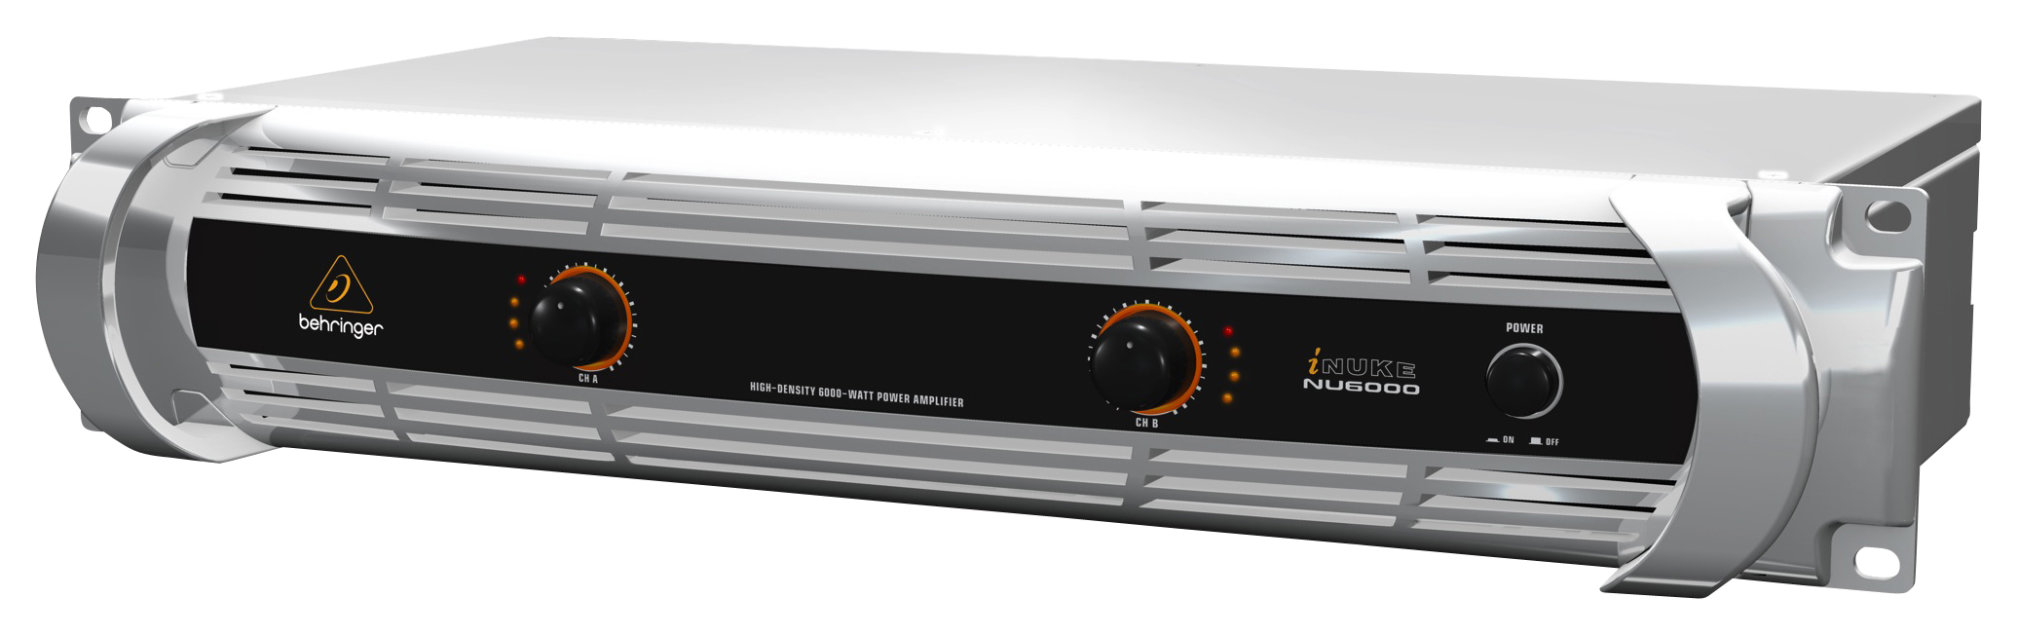 behringer inuke nu4 6000 power amplifier review